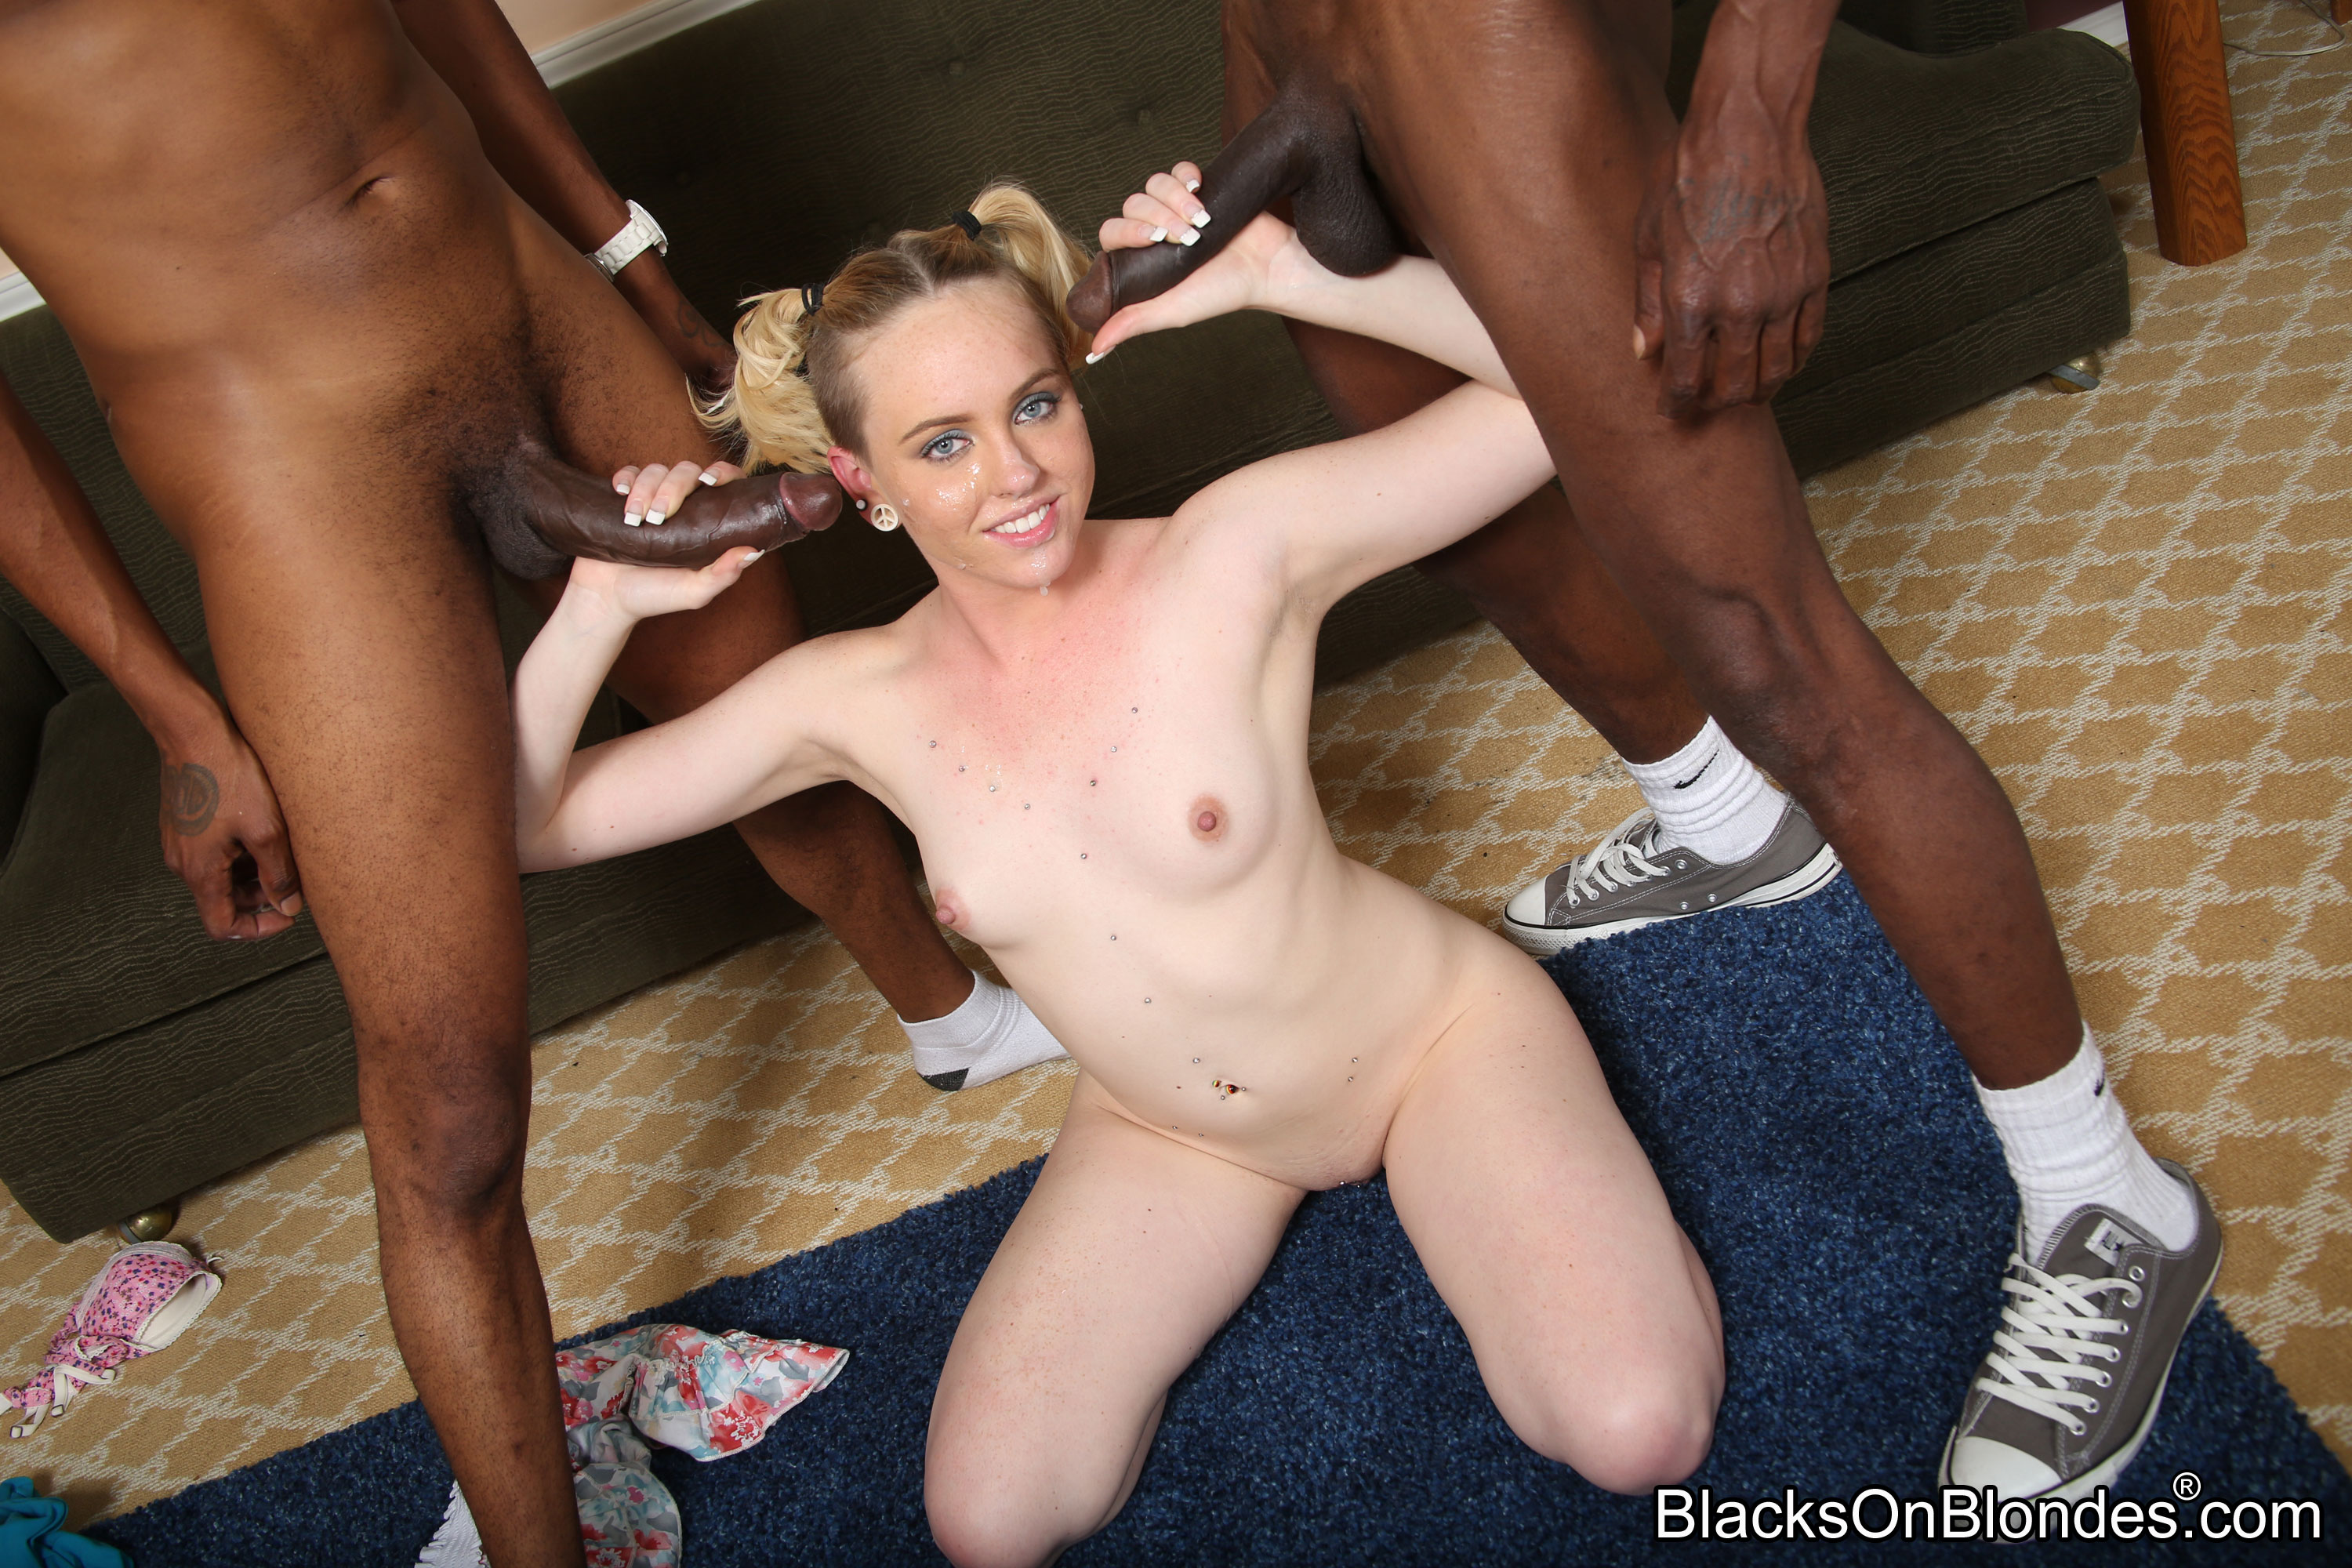 galleries blacksonblondes content caroline cross pic 30